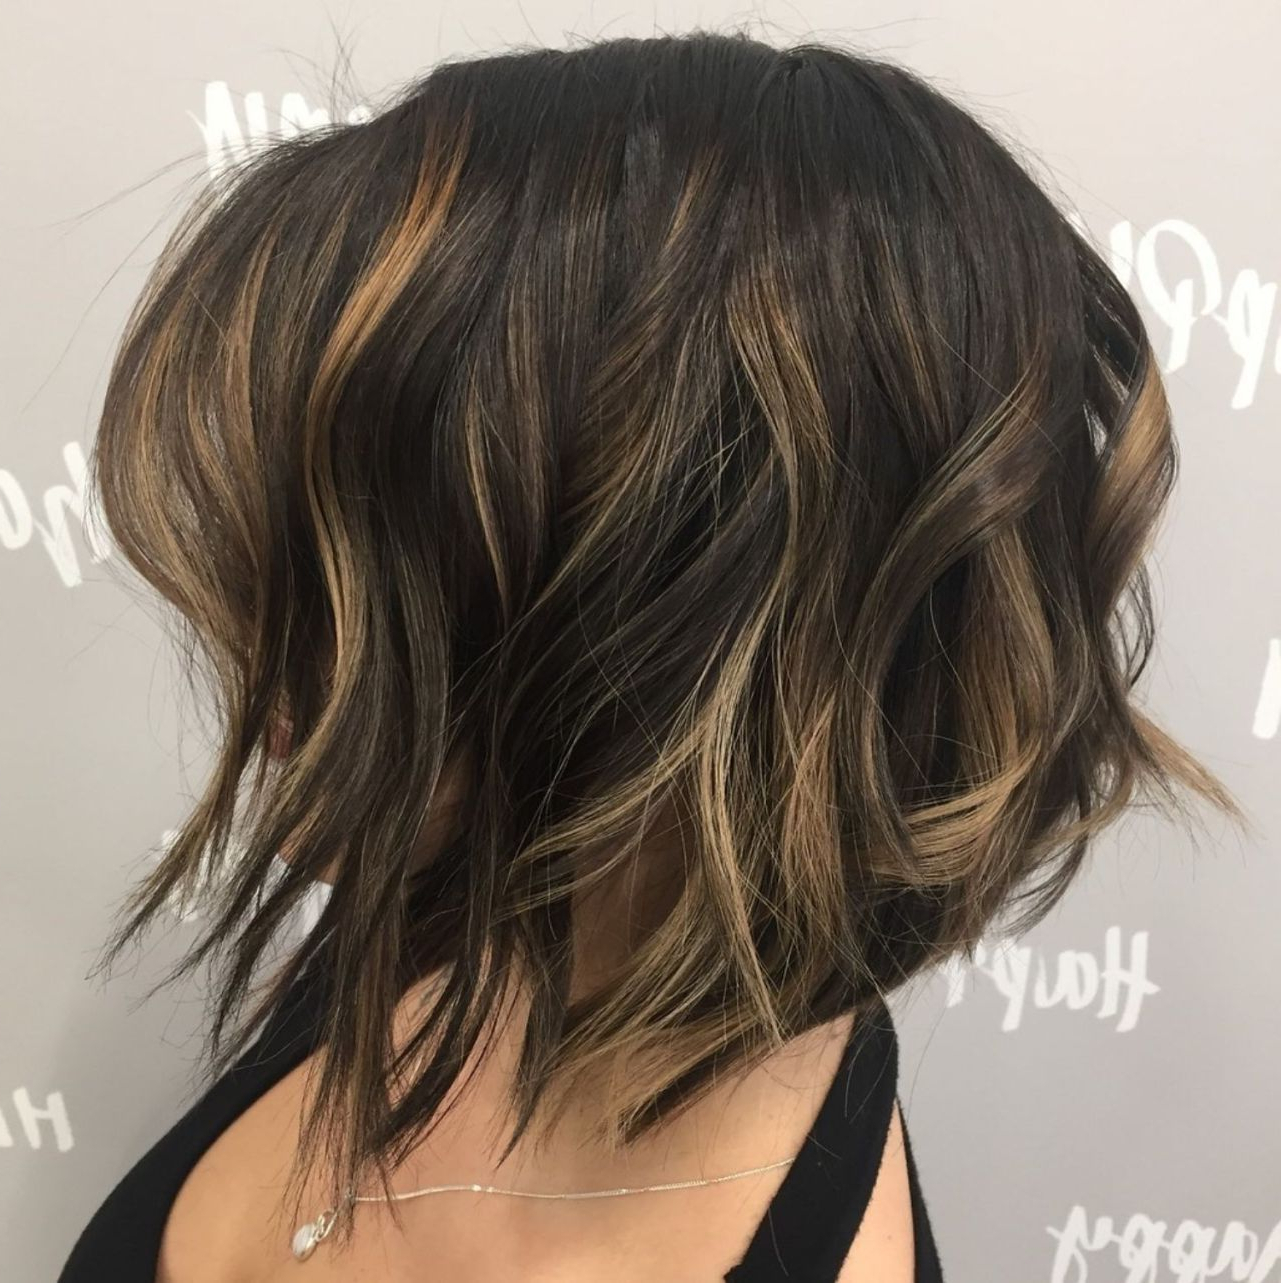 60 Messy Bob Hairstyles For Your Trendy Casual Looks | Hair With Regard To Inverted Brunette Bob Hairstyles With Messy Curls (Gallery 8 of 25)